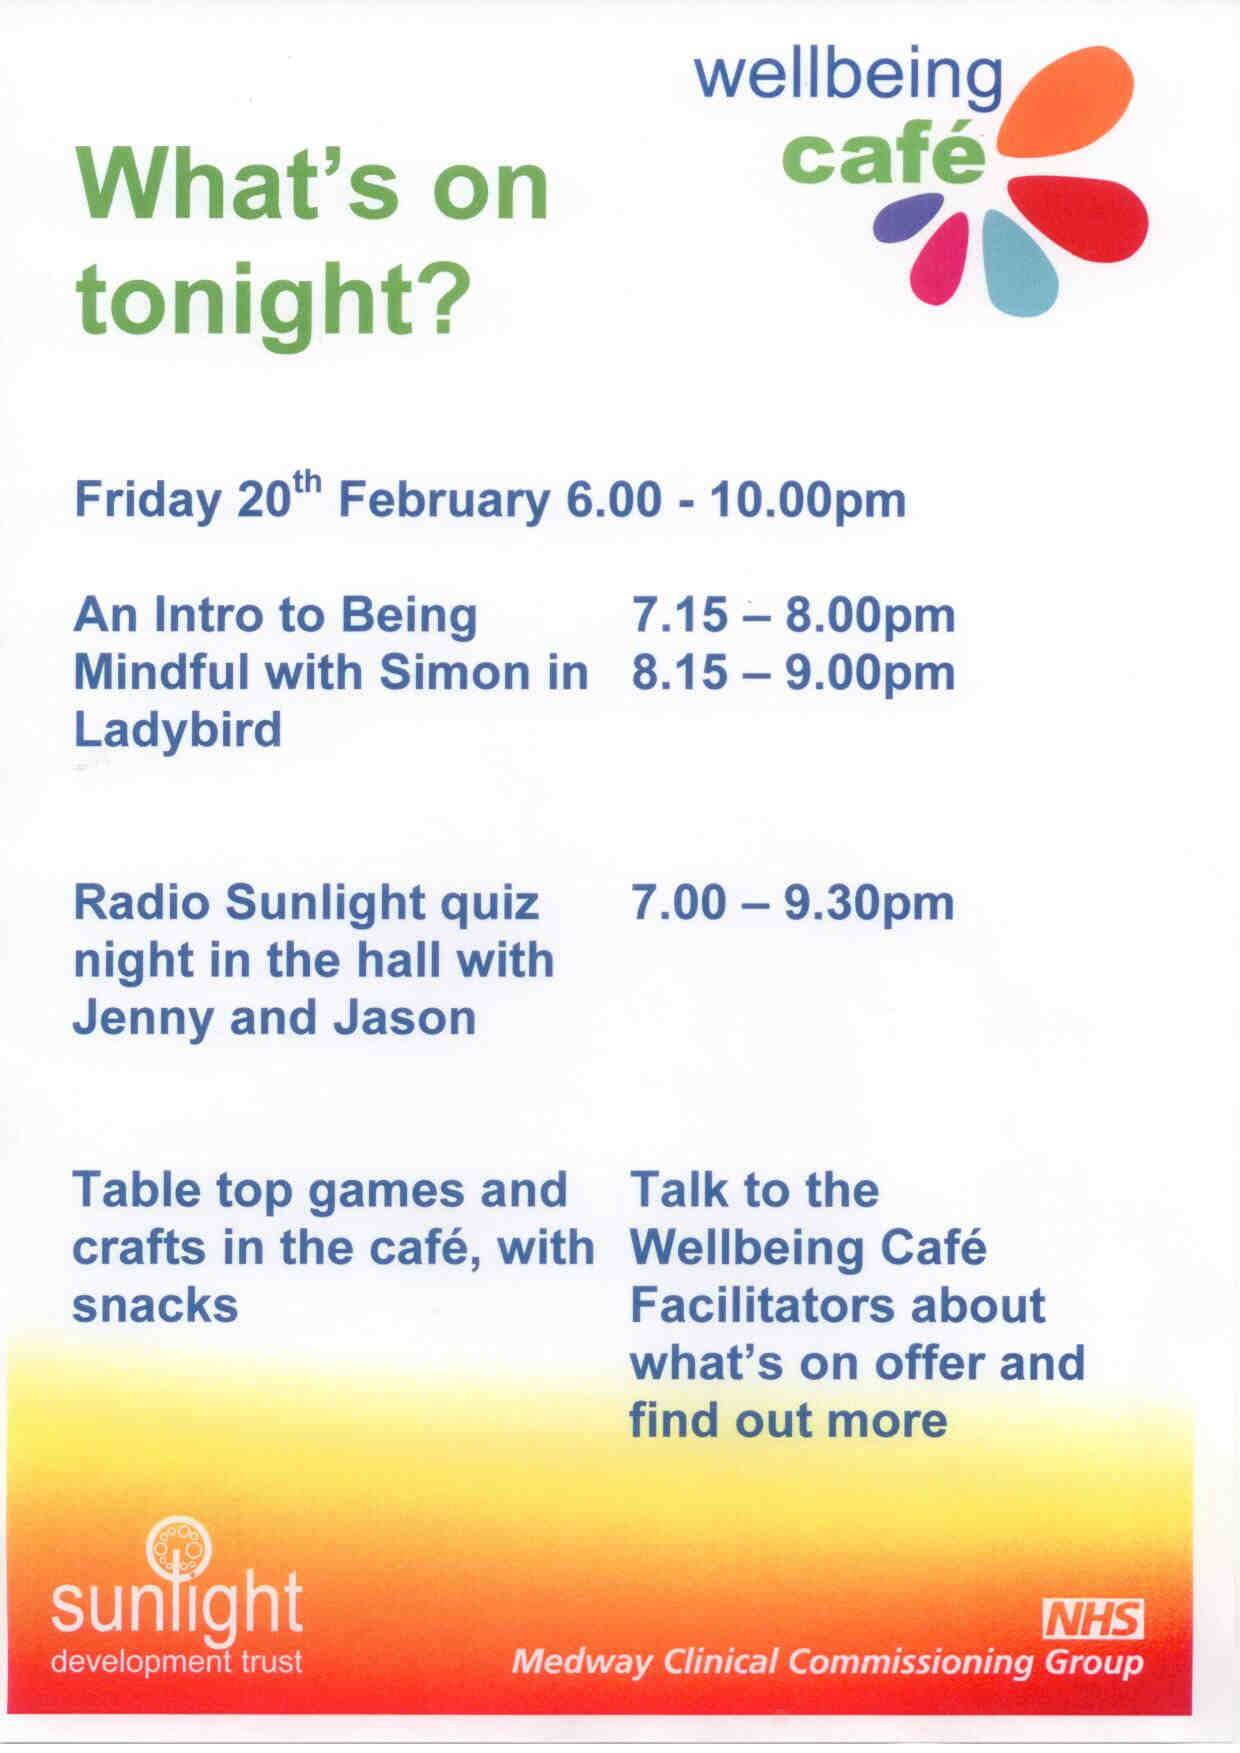 What's on at wellbeing cafe